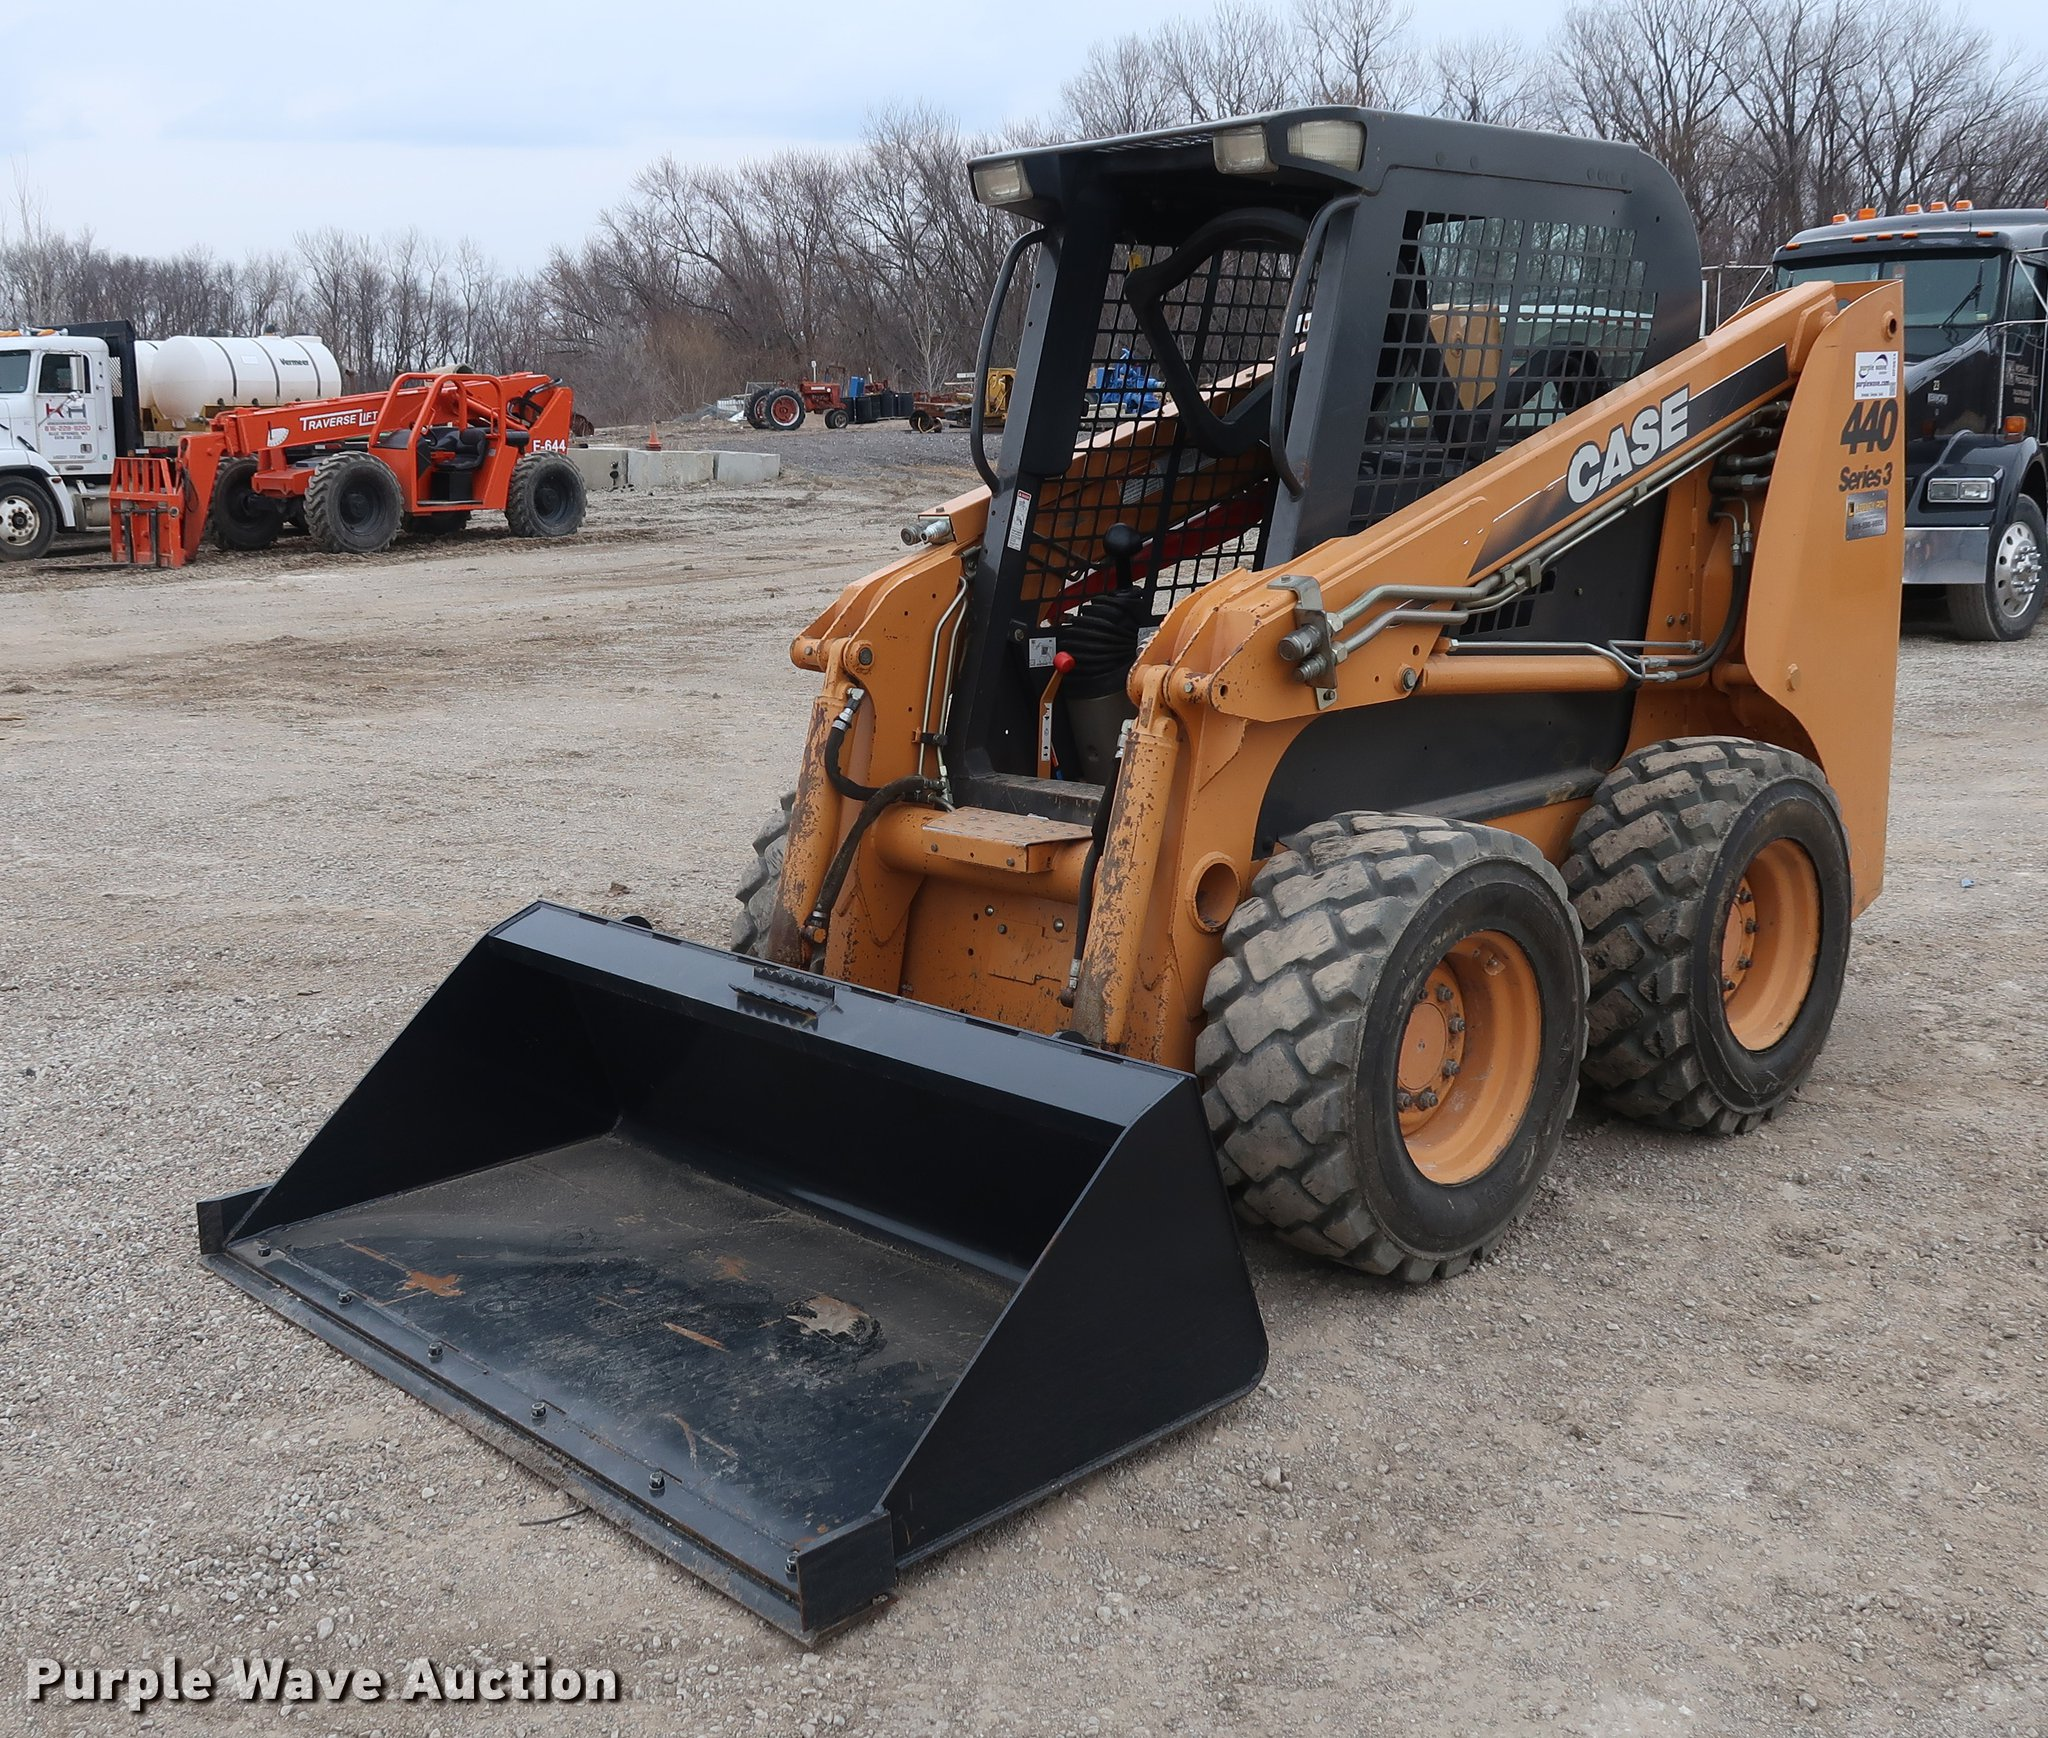 case 440 series 3 skid steer item df3614 sold may 3 con rh purplewave com Traverse Lift Parts Traverse Lift 8040 Parts